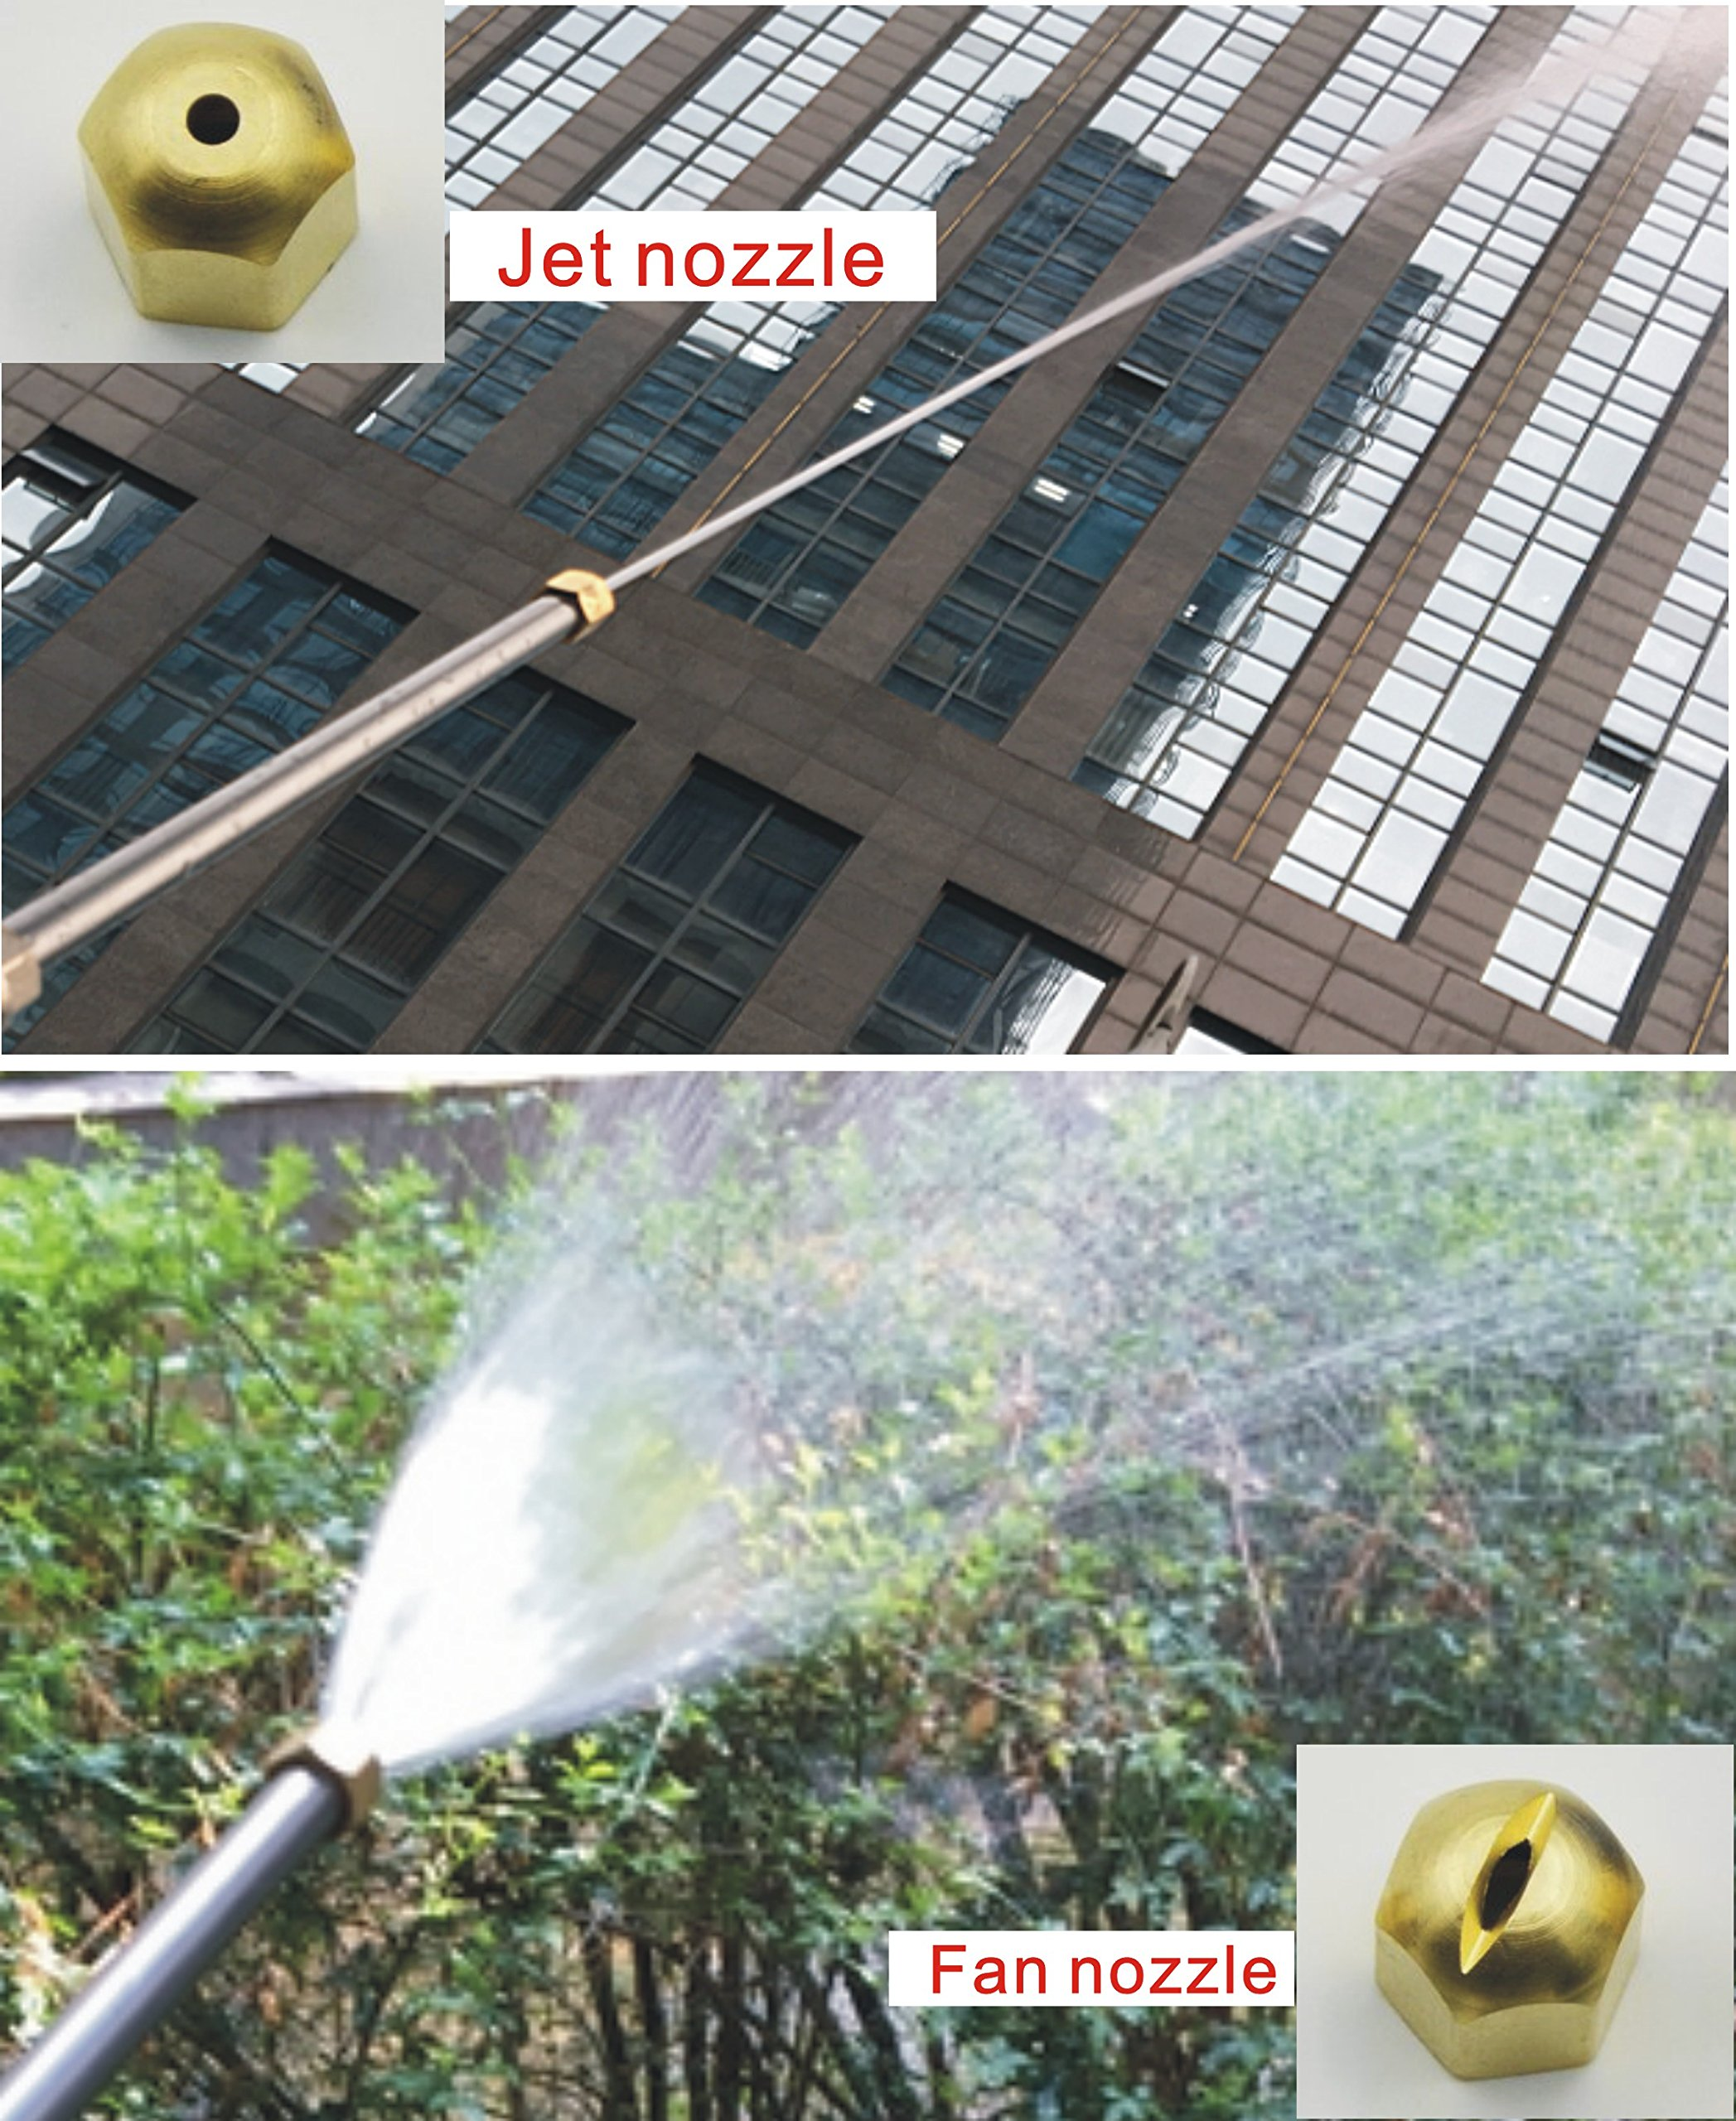 Buyplus Pressure Power Washer Wand - Upgrade Magic Water Hose Nozzle, Garden Hose Sprayer for Car Wash and Window Washing, 2 Tips-one is Power Jet Stream, one is Fan Action (Blue 27) by Buyplus (Image #4)